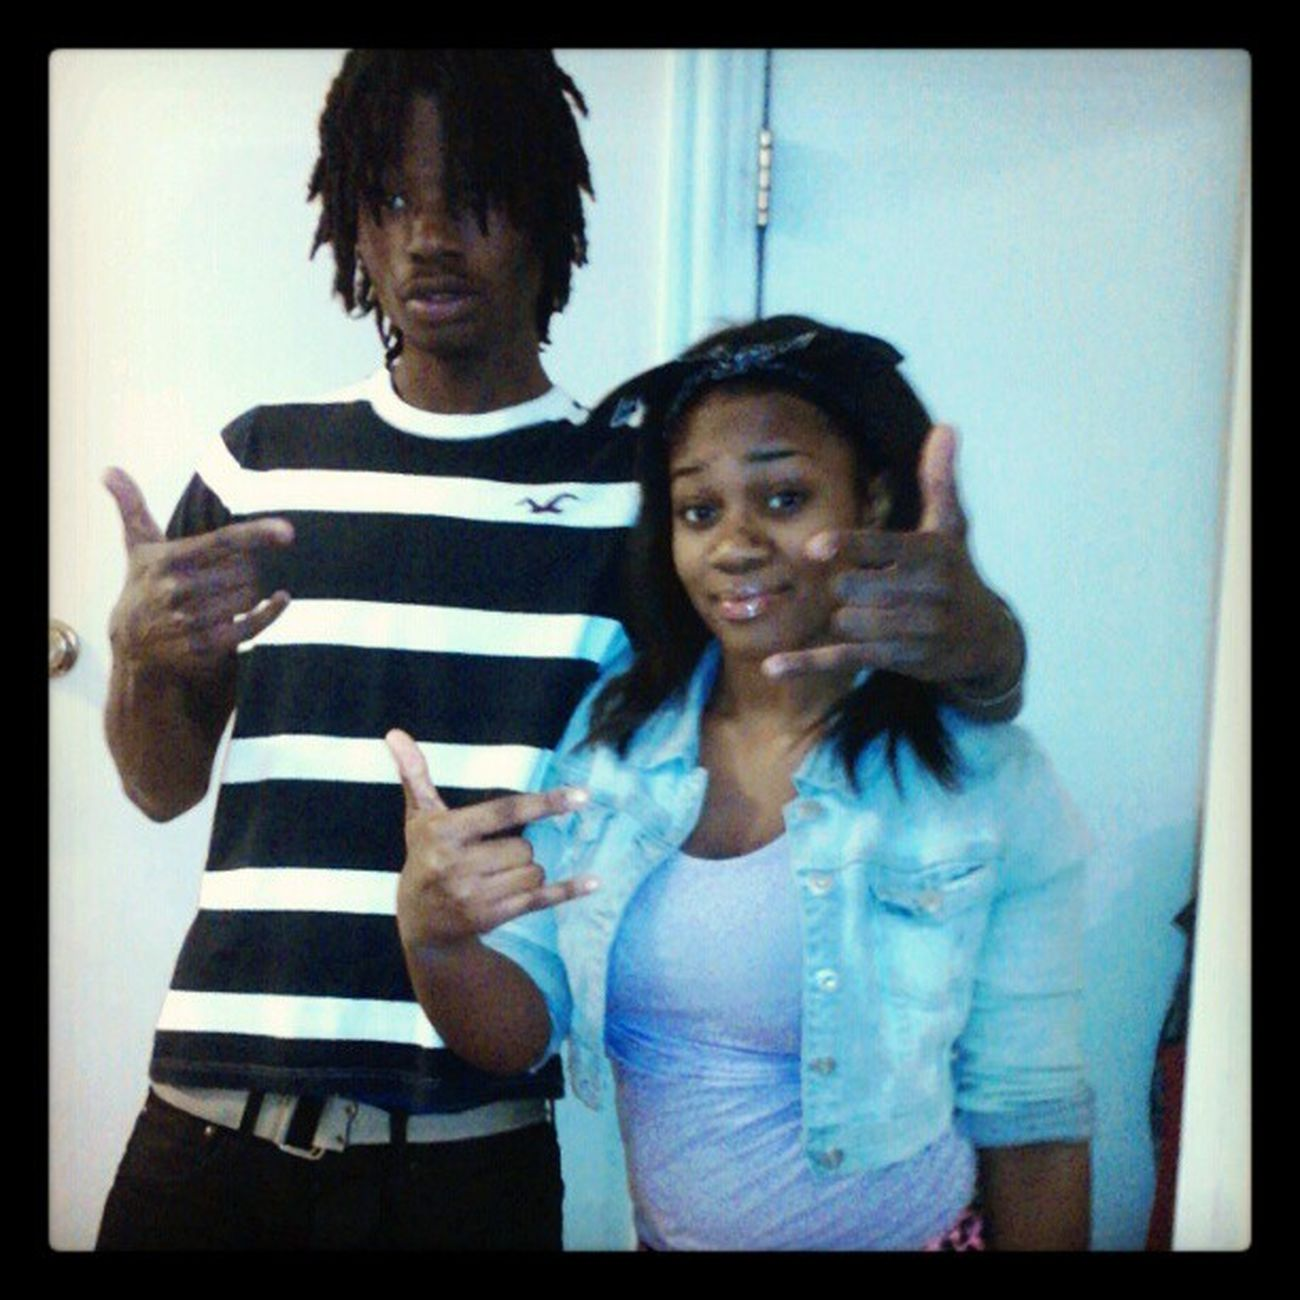 MarloSosa3hunna 300 OTF N 'sup that's what's up